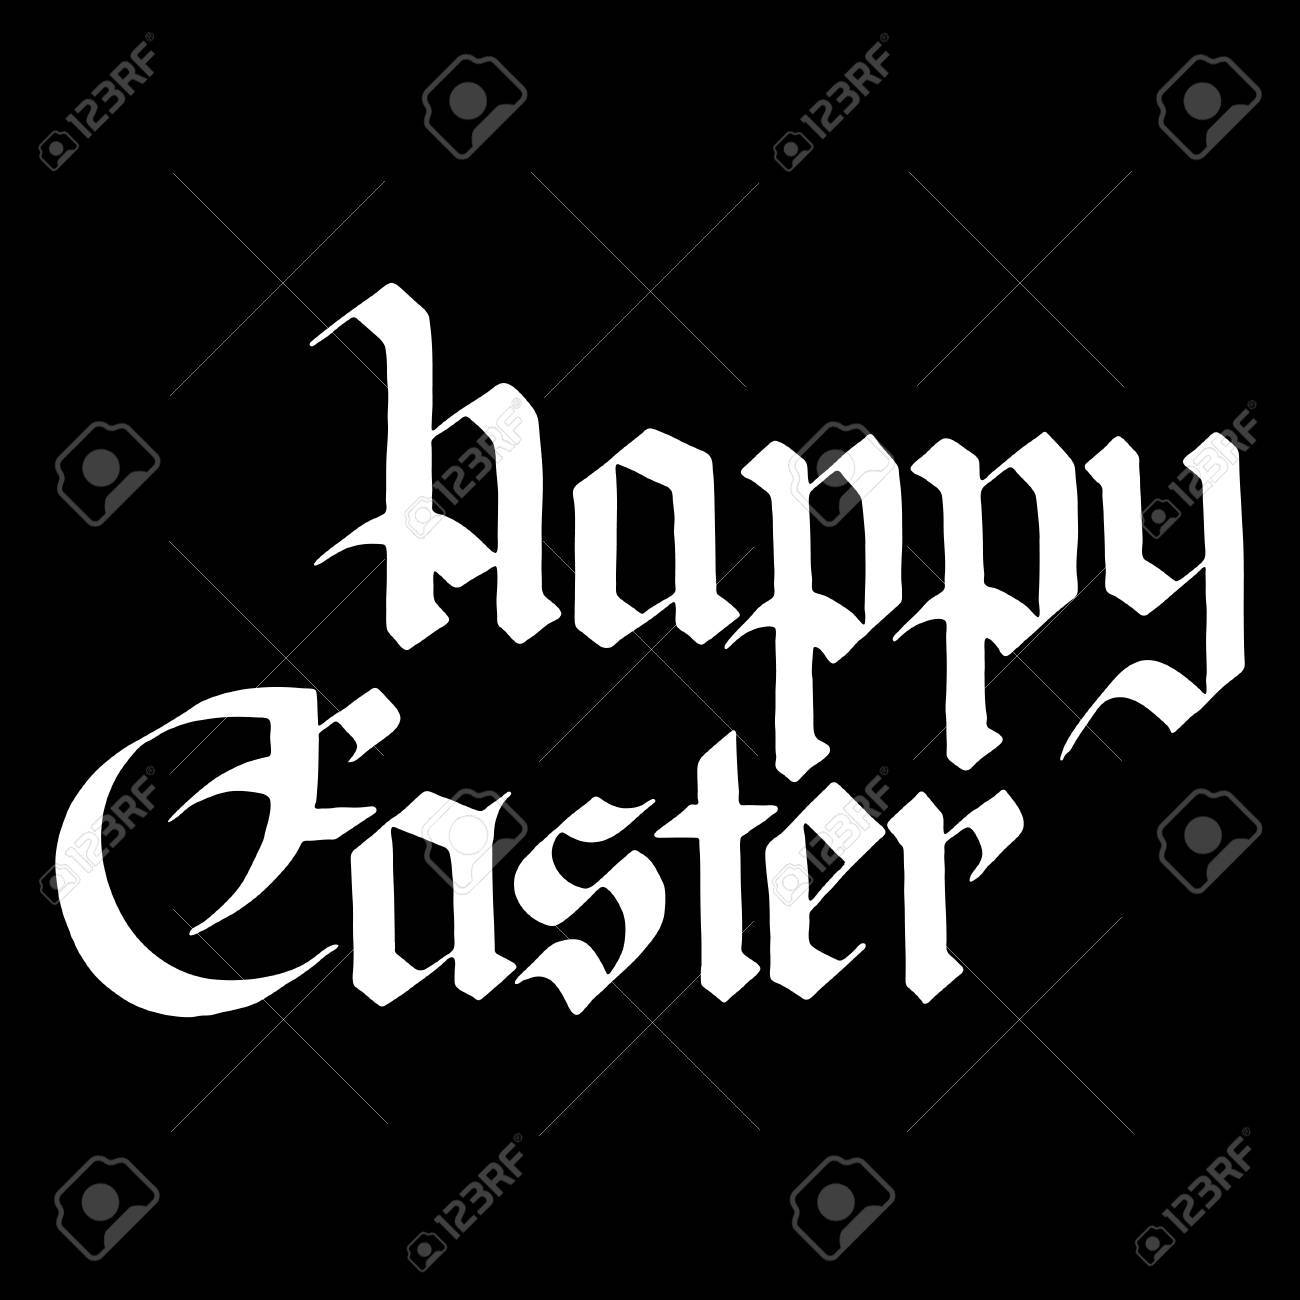 Greeting cards for happy easter lettering in gothic style vector greeting cards for happy easter lettering in gothic style vector illustration on a black kristyandbryce Images